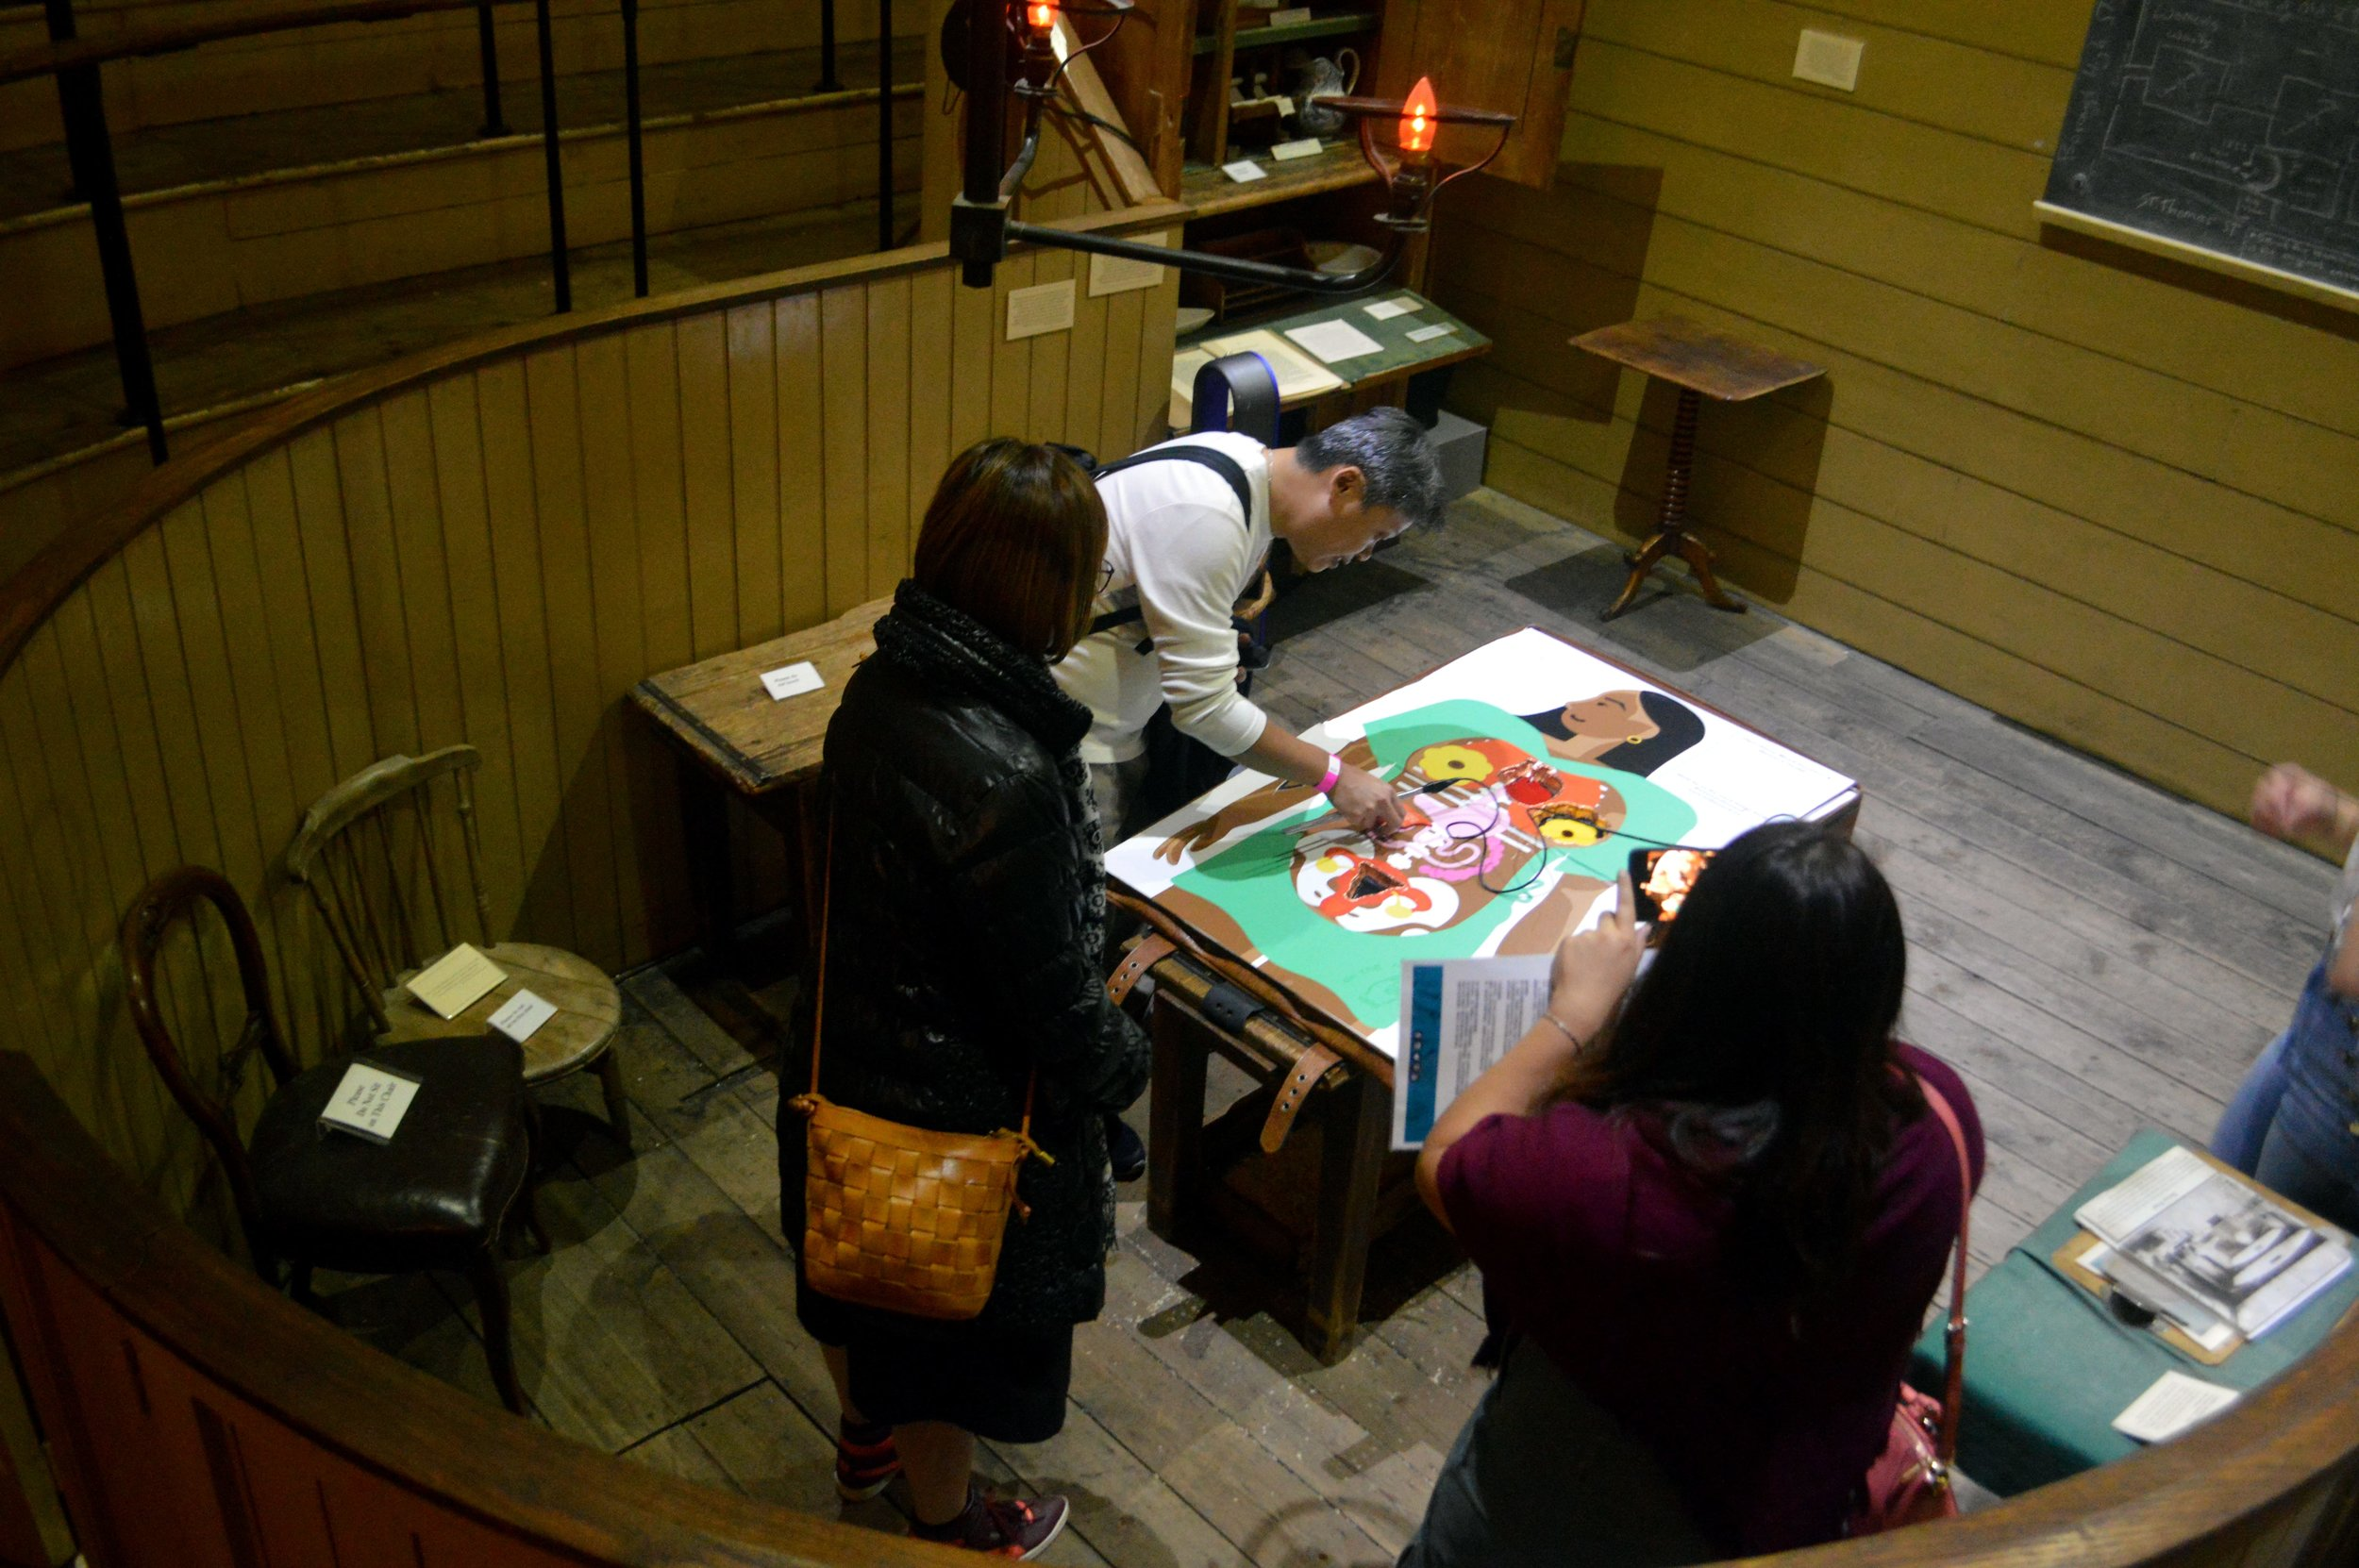 Group of three people playing operation game